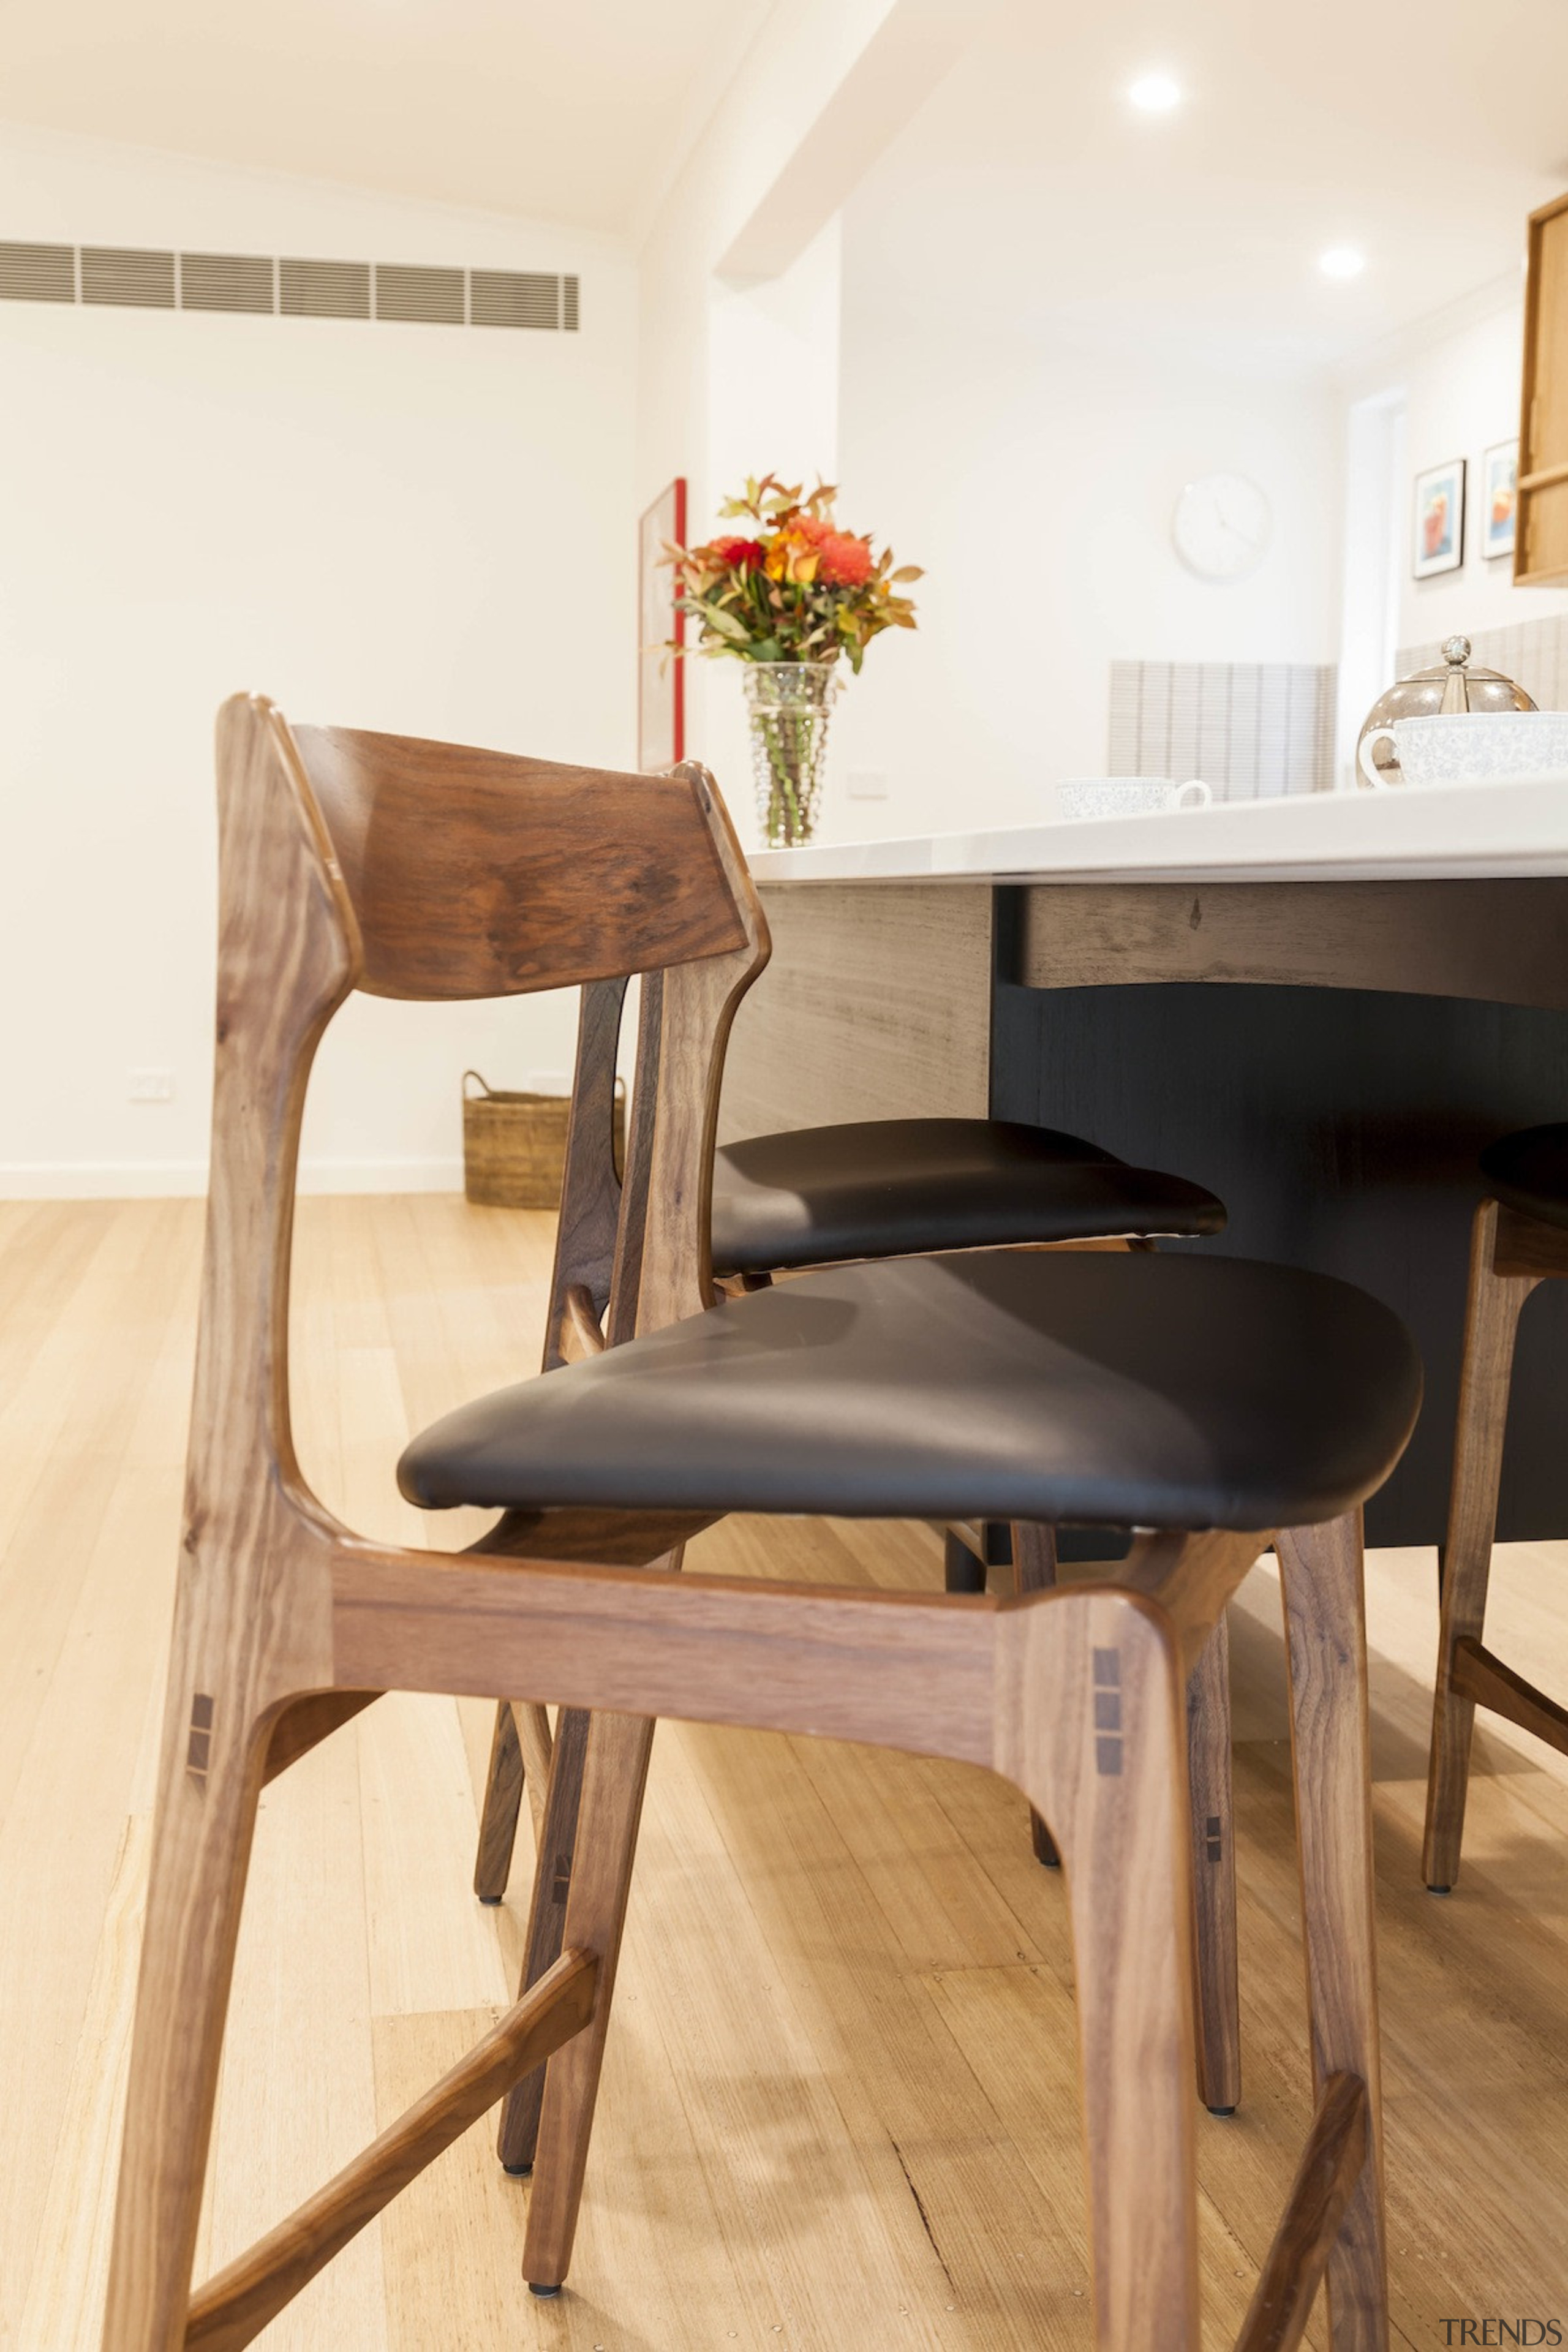 A closer view of the interior decoration - chair, dining room, floor, flooring, furniture, hardwood, product design, table, wood, white